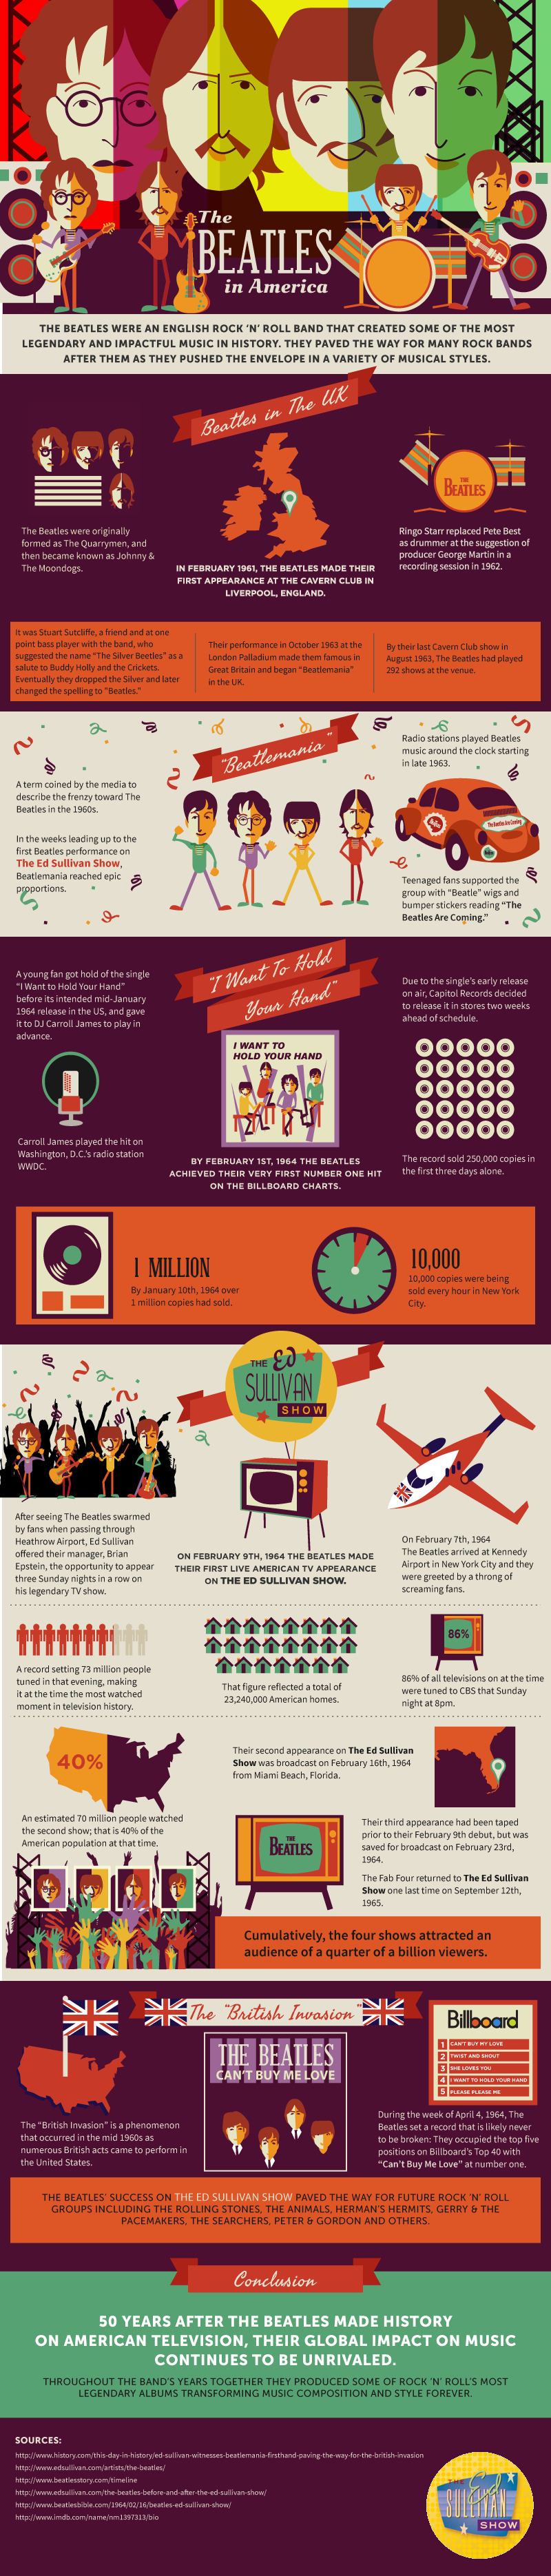 The Beatles in America Infographic - Beatles on The Ed Sullivan Show